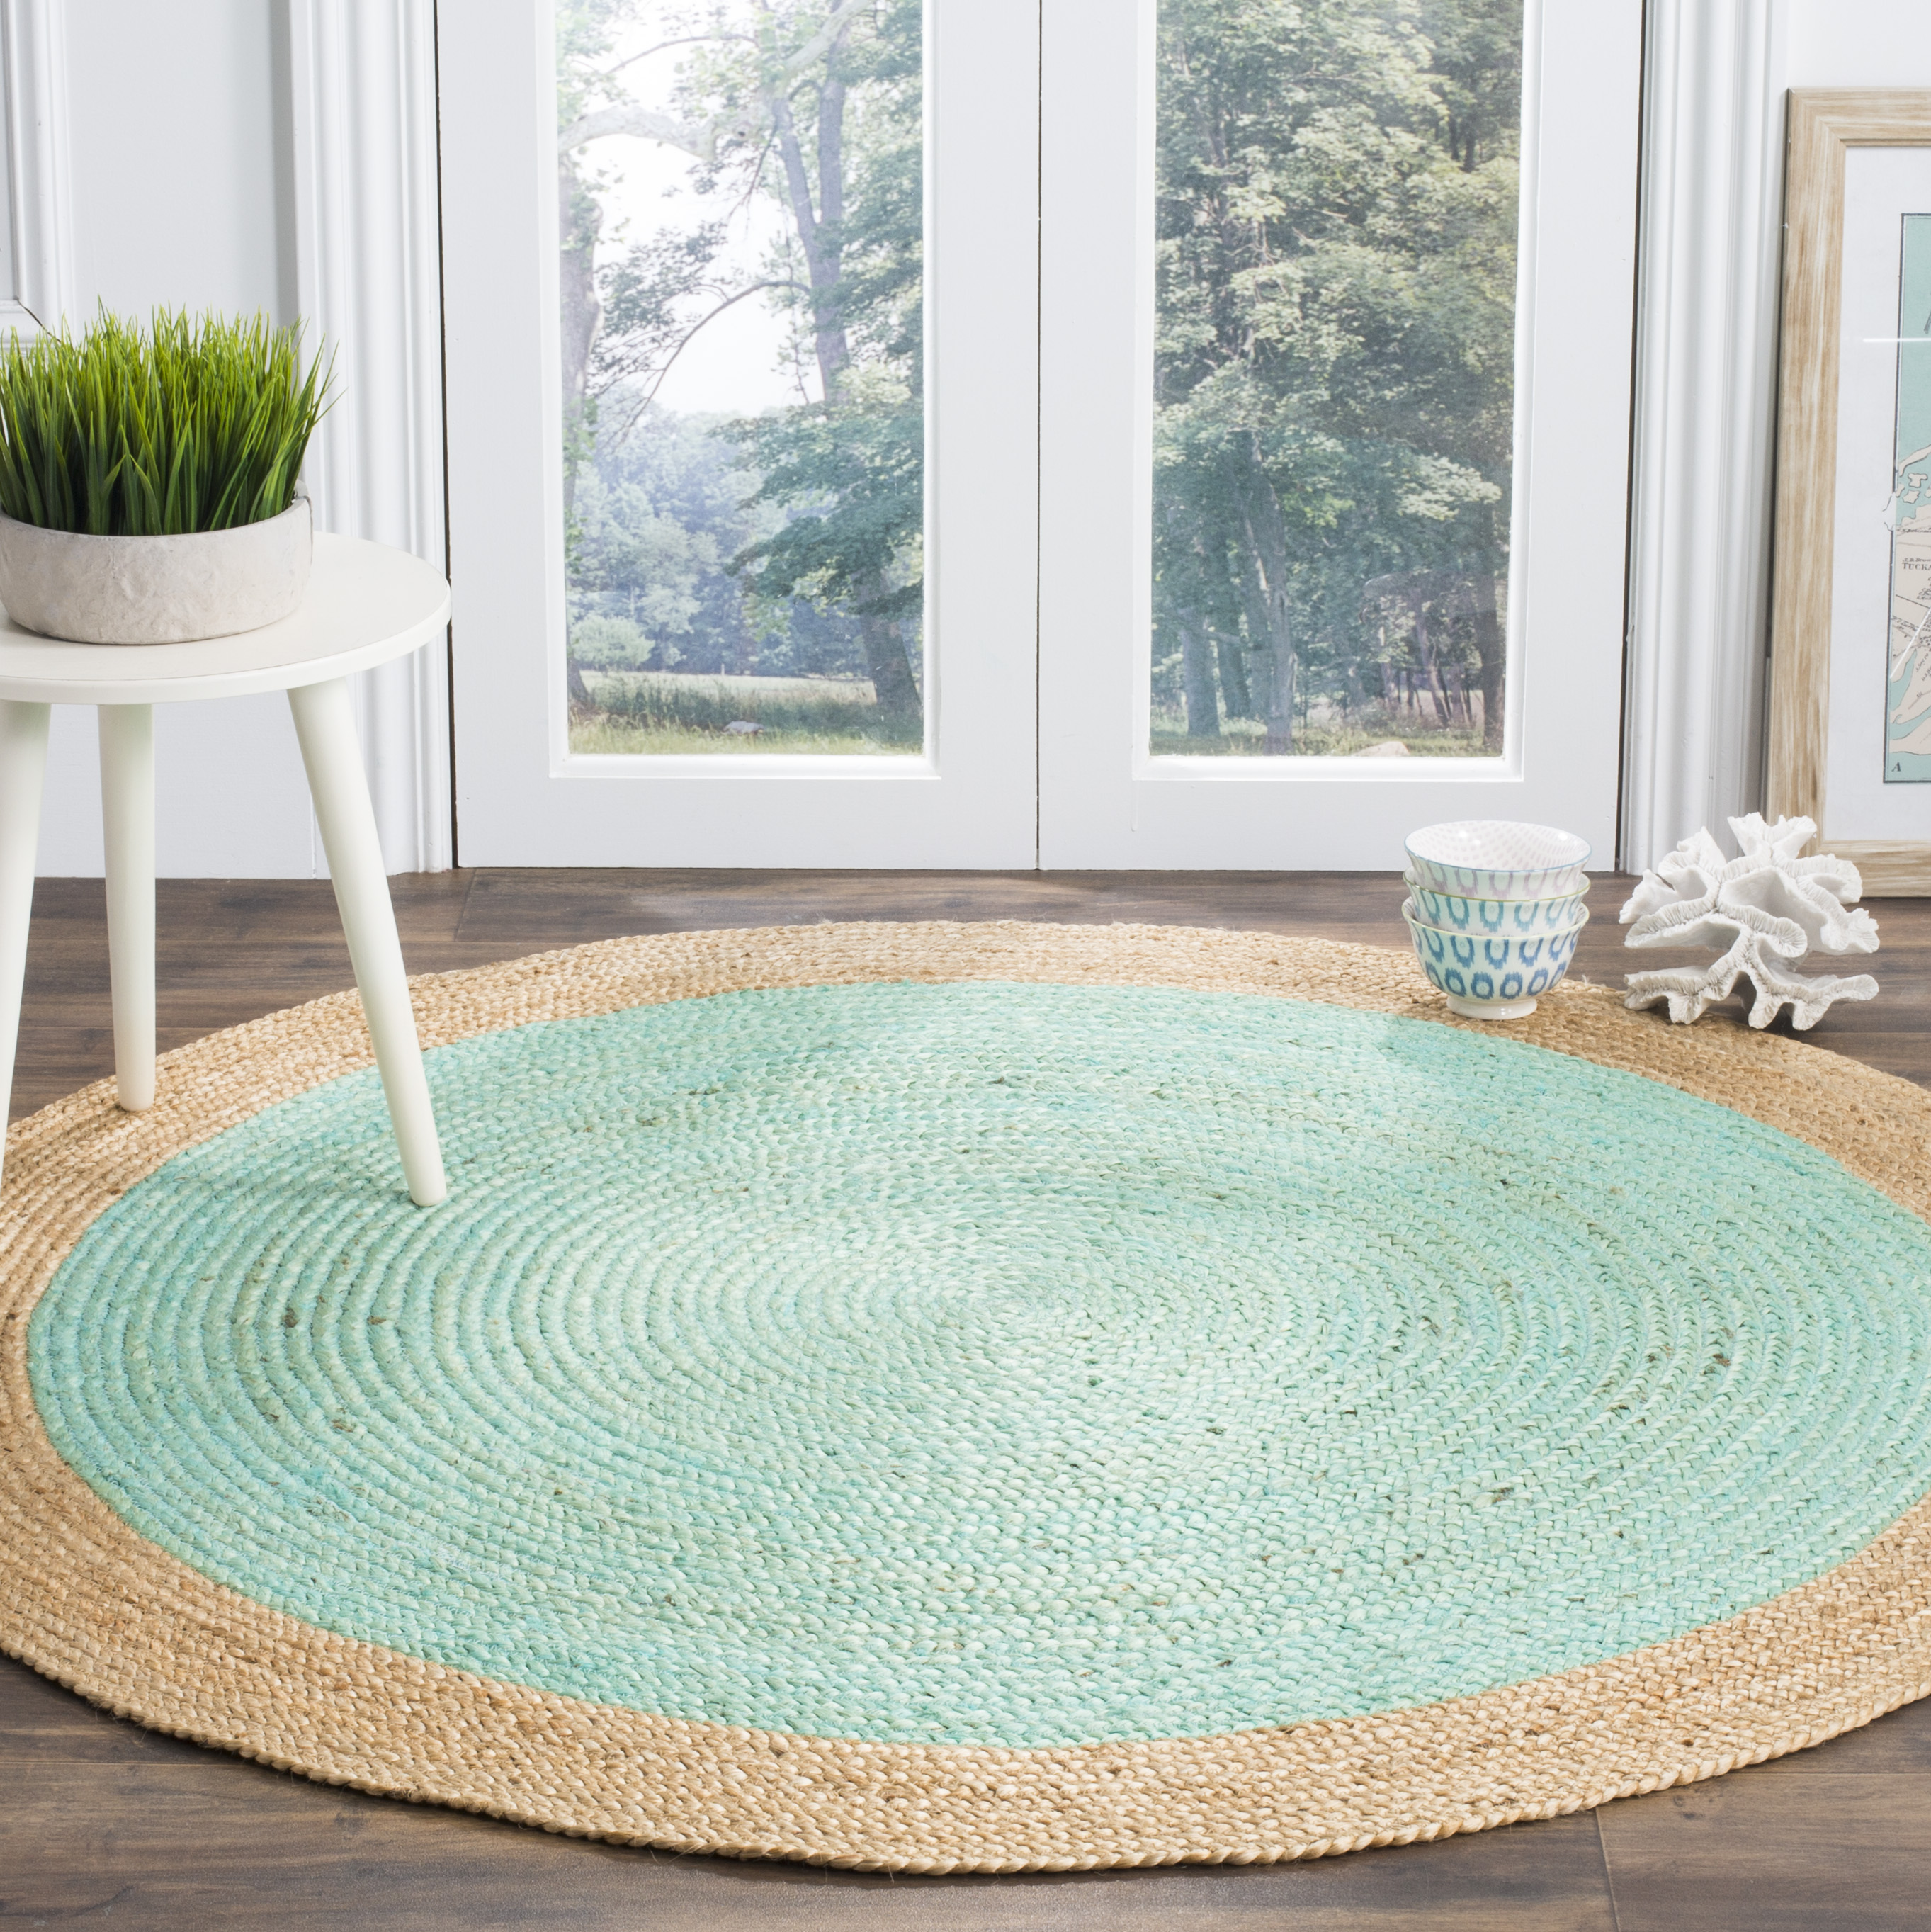 Safavieh Natural Fiber Cebrail Braided Area Rug